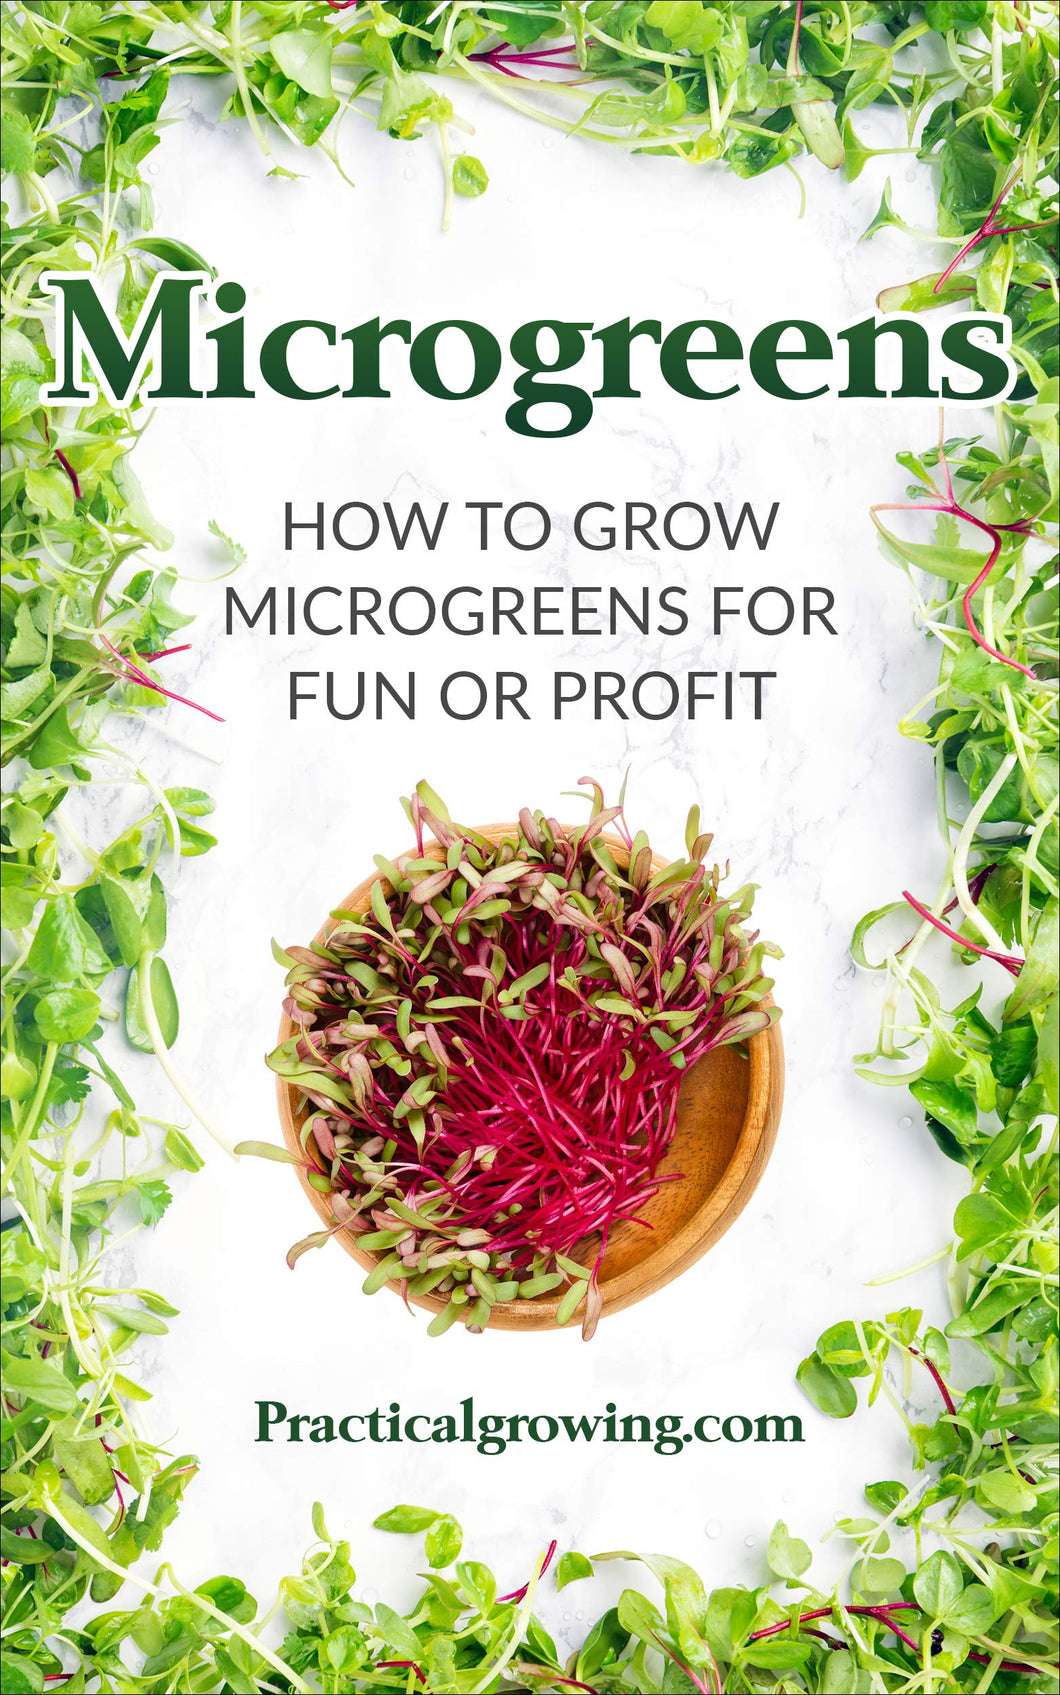 Microgreens: How to Grow Microgreens for Fun or Profit